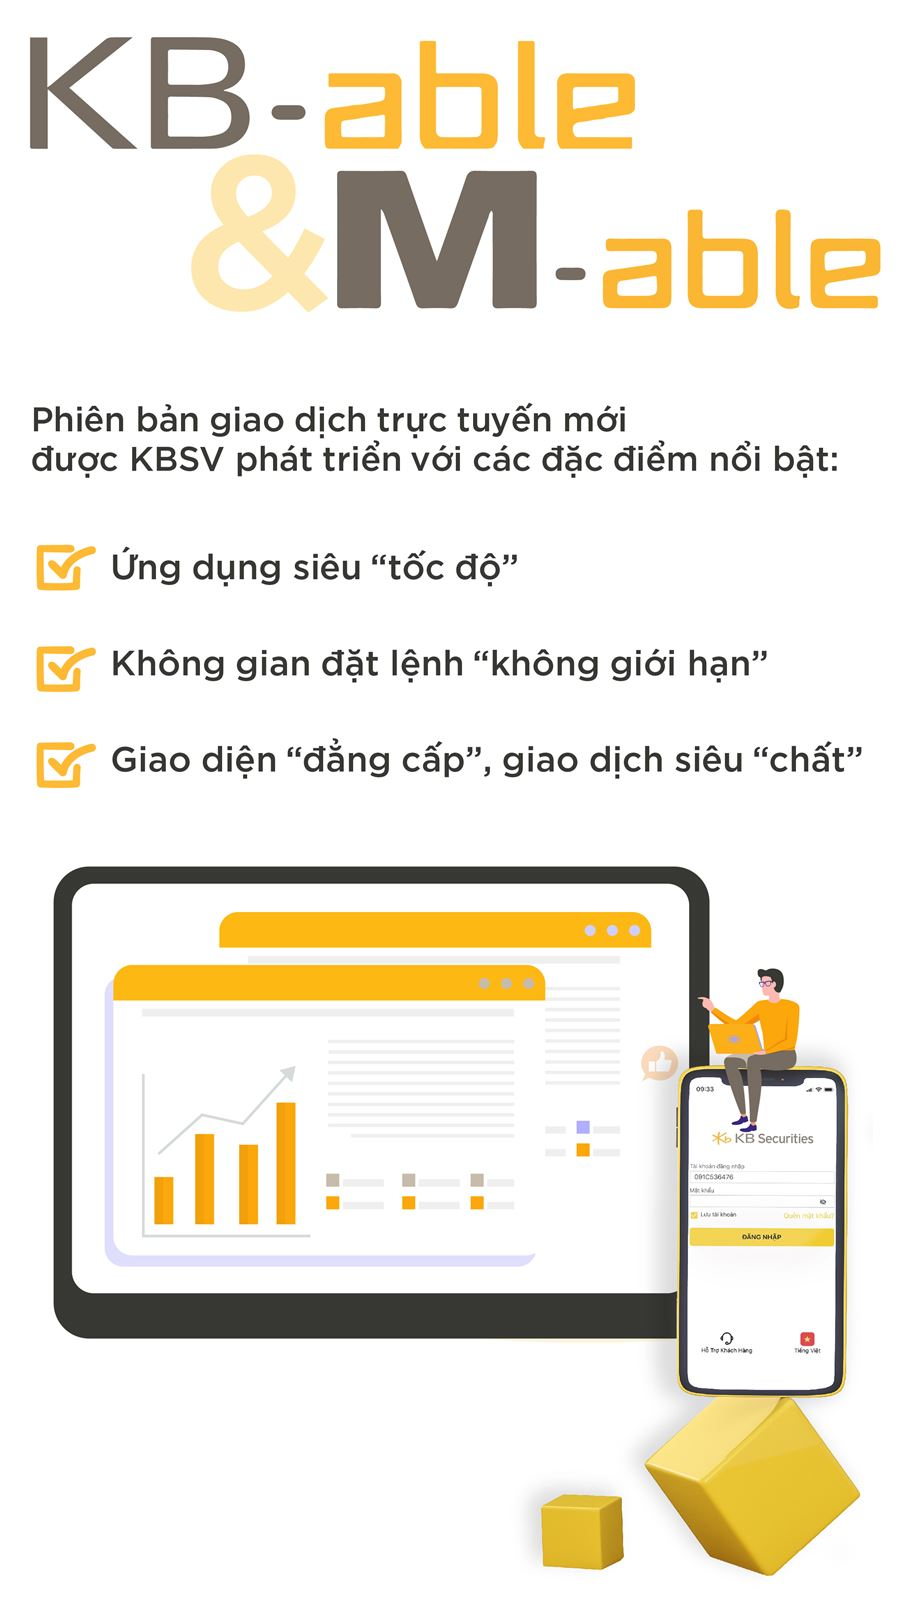 Kênh giao dịch KB-able & M-able